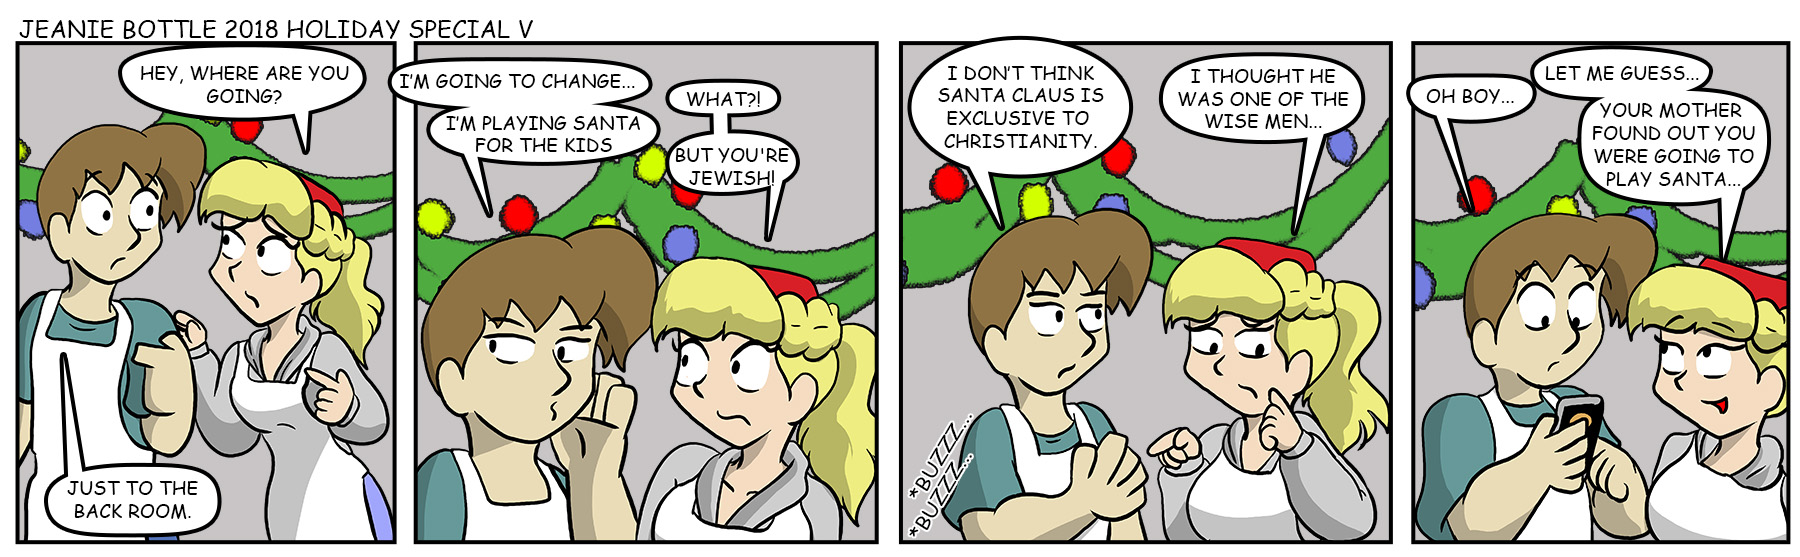 Jeanie Bottle Christmas Special – Page 5